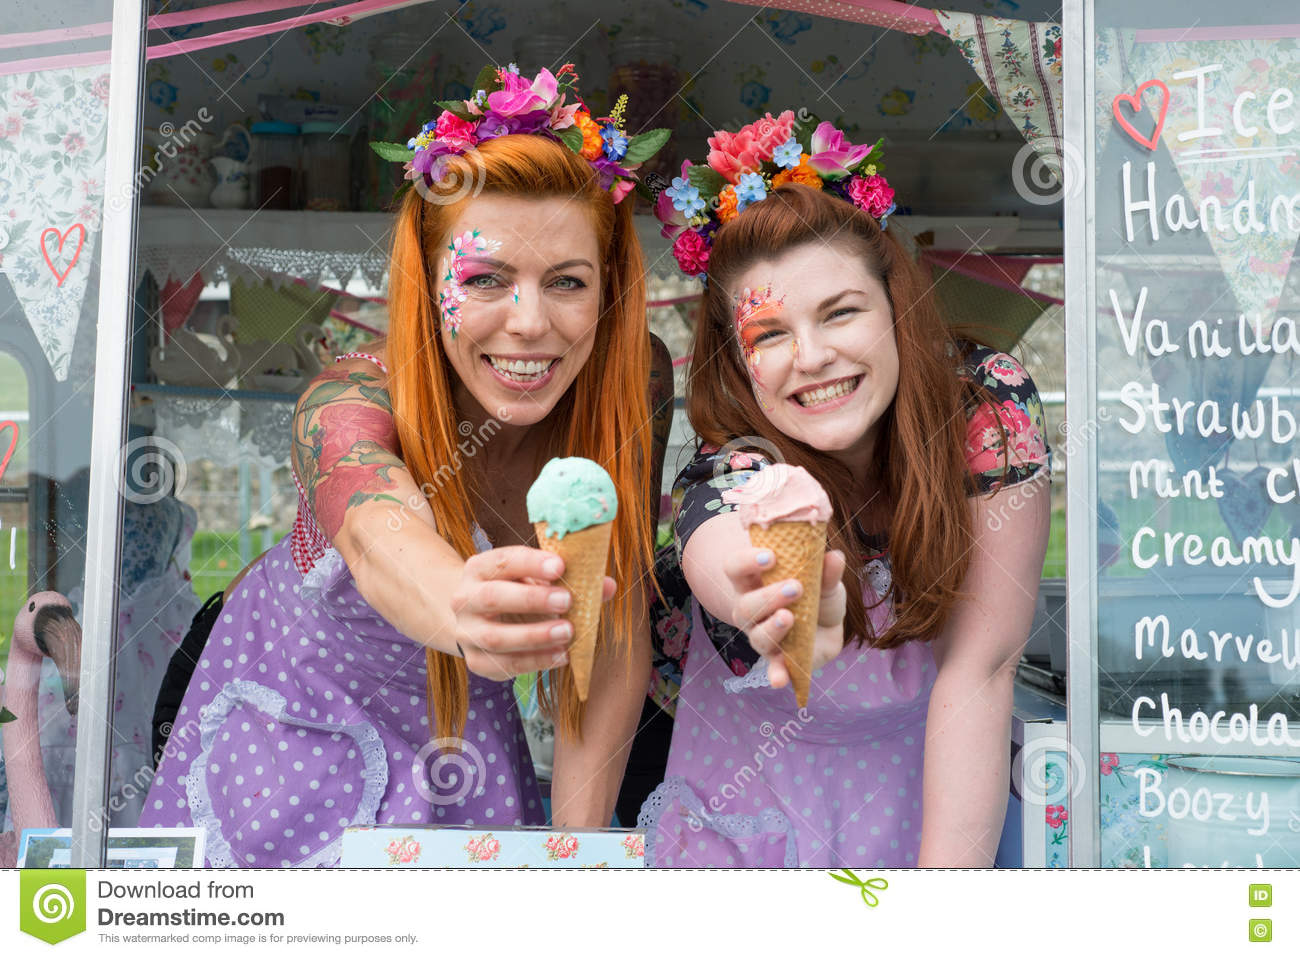 Two ginger haired ladies holding ice cream from truck